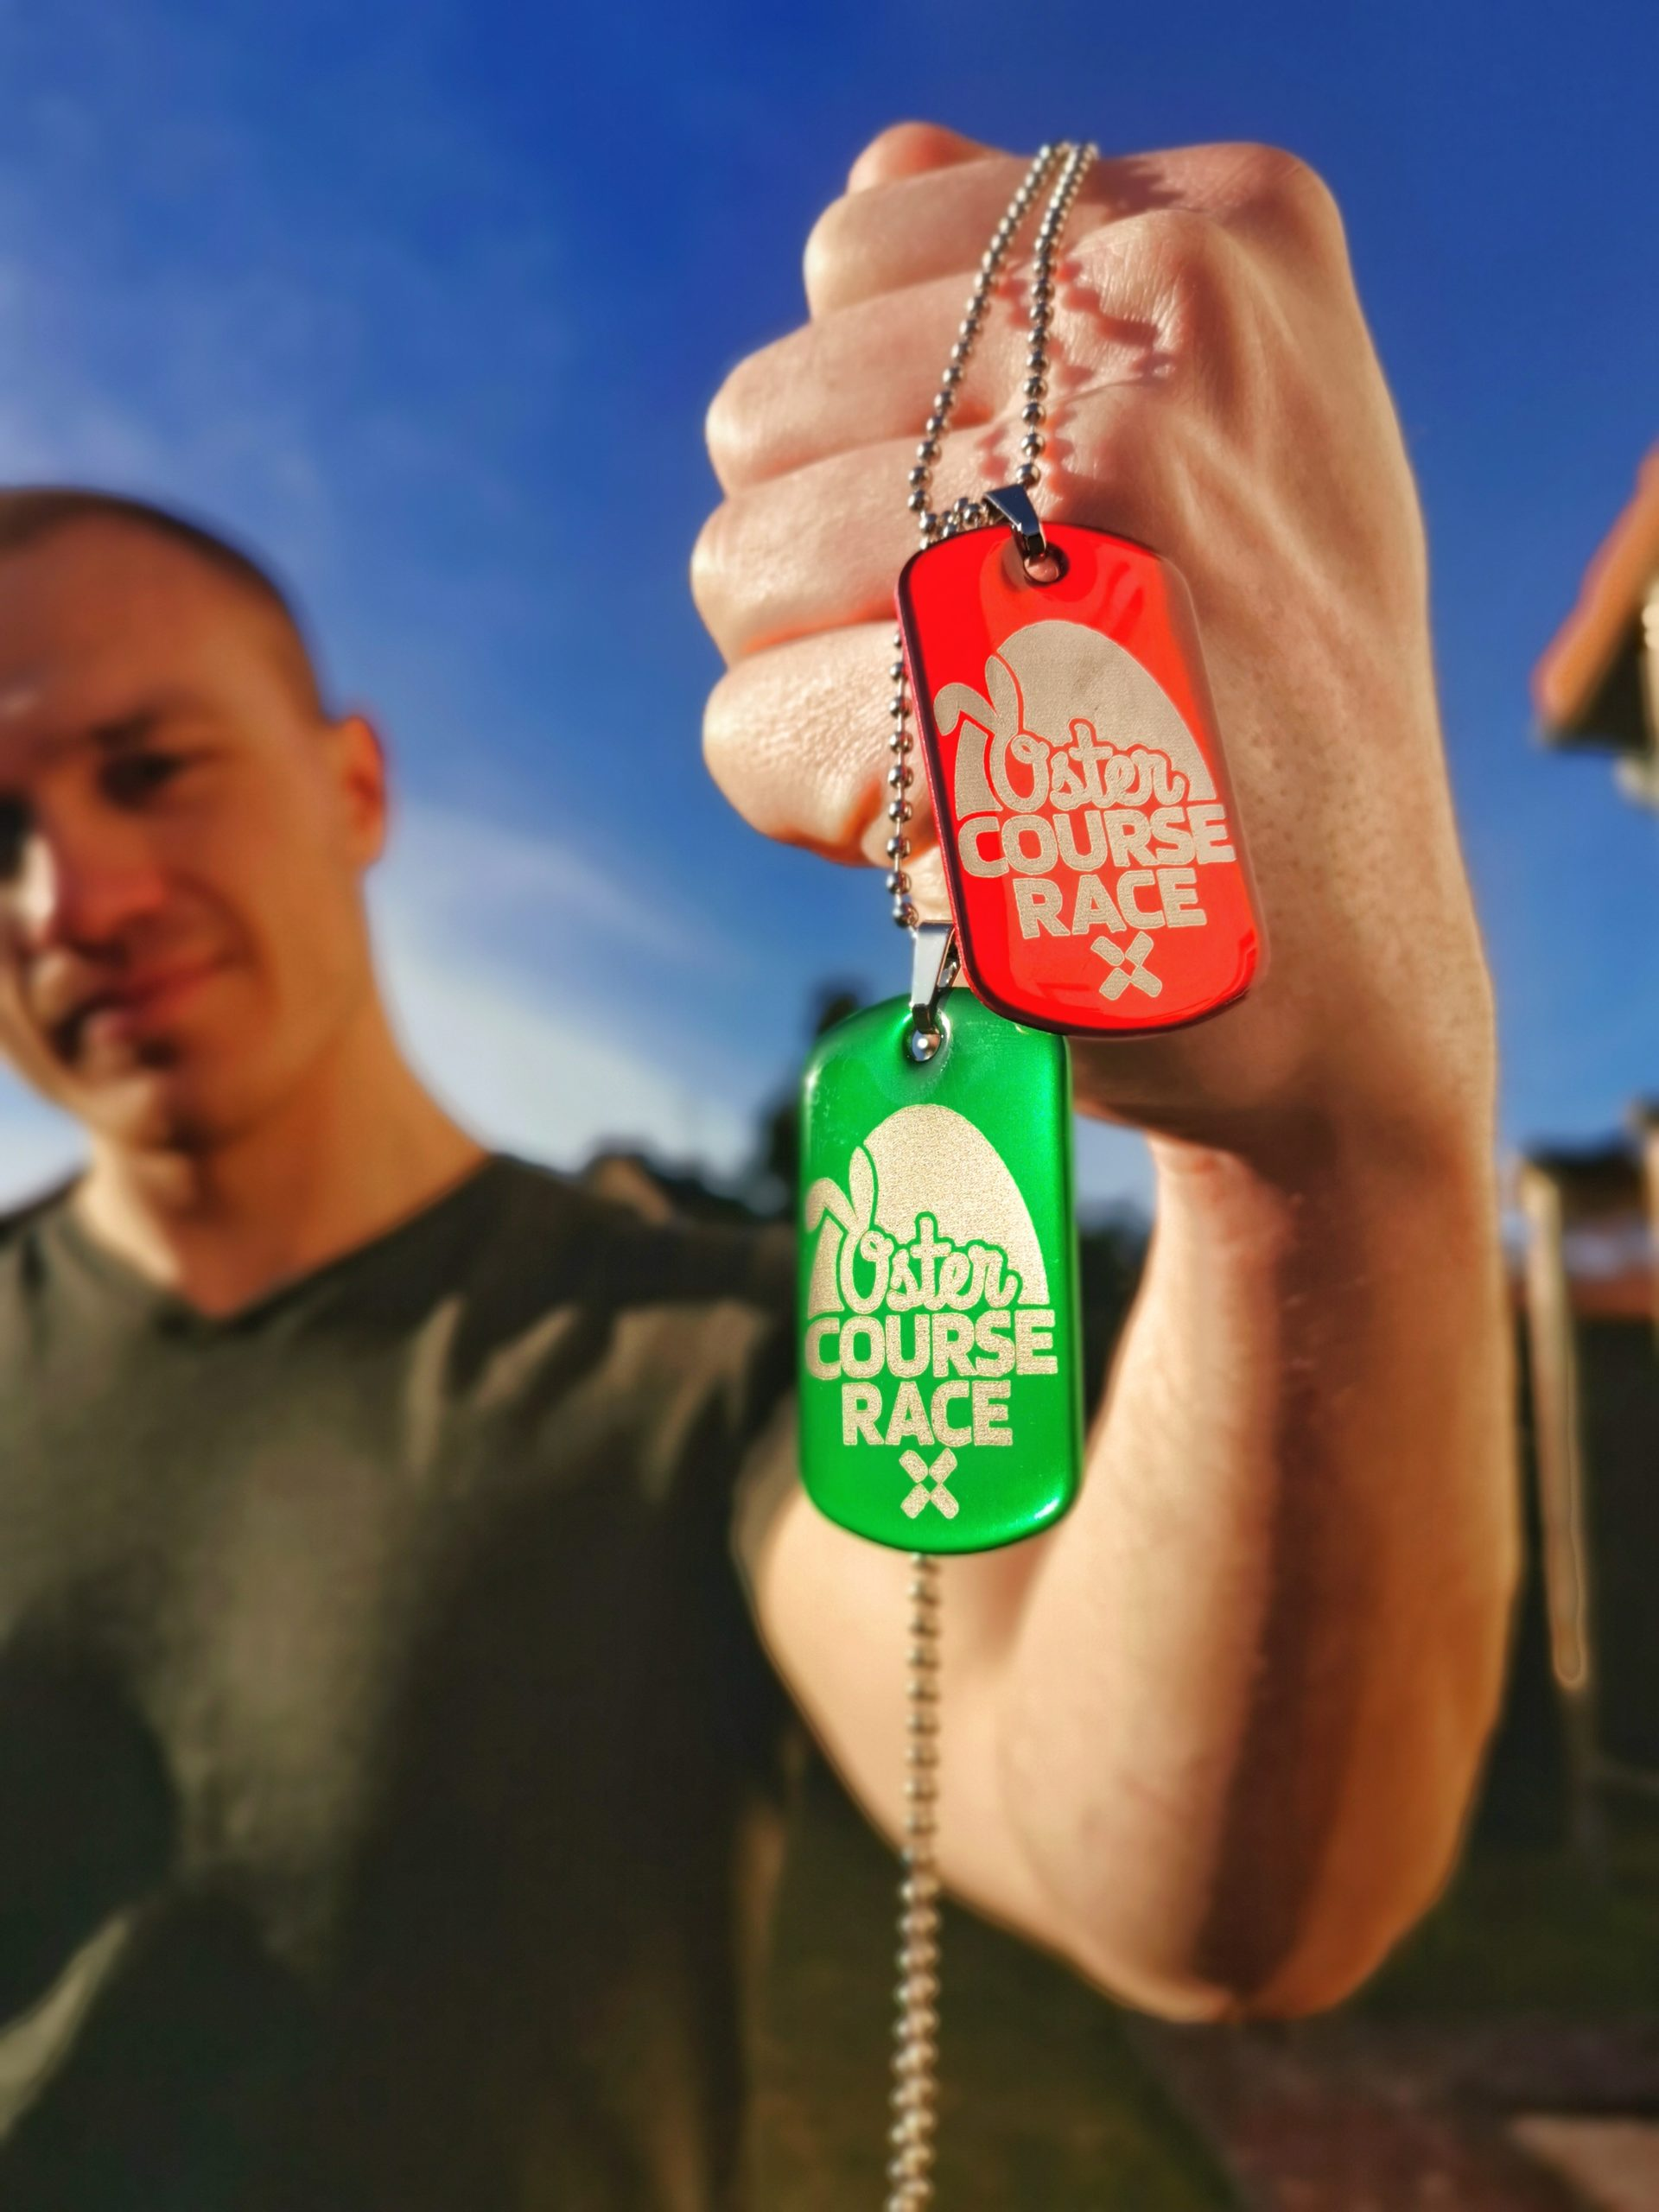 Oster Course Race 2021 Podcast OCR Dogtags